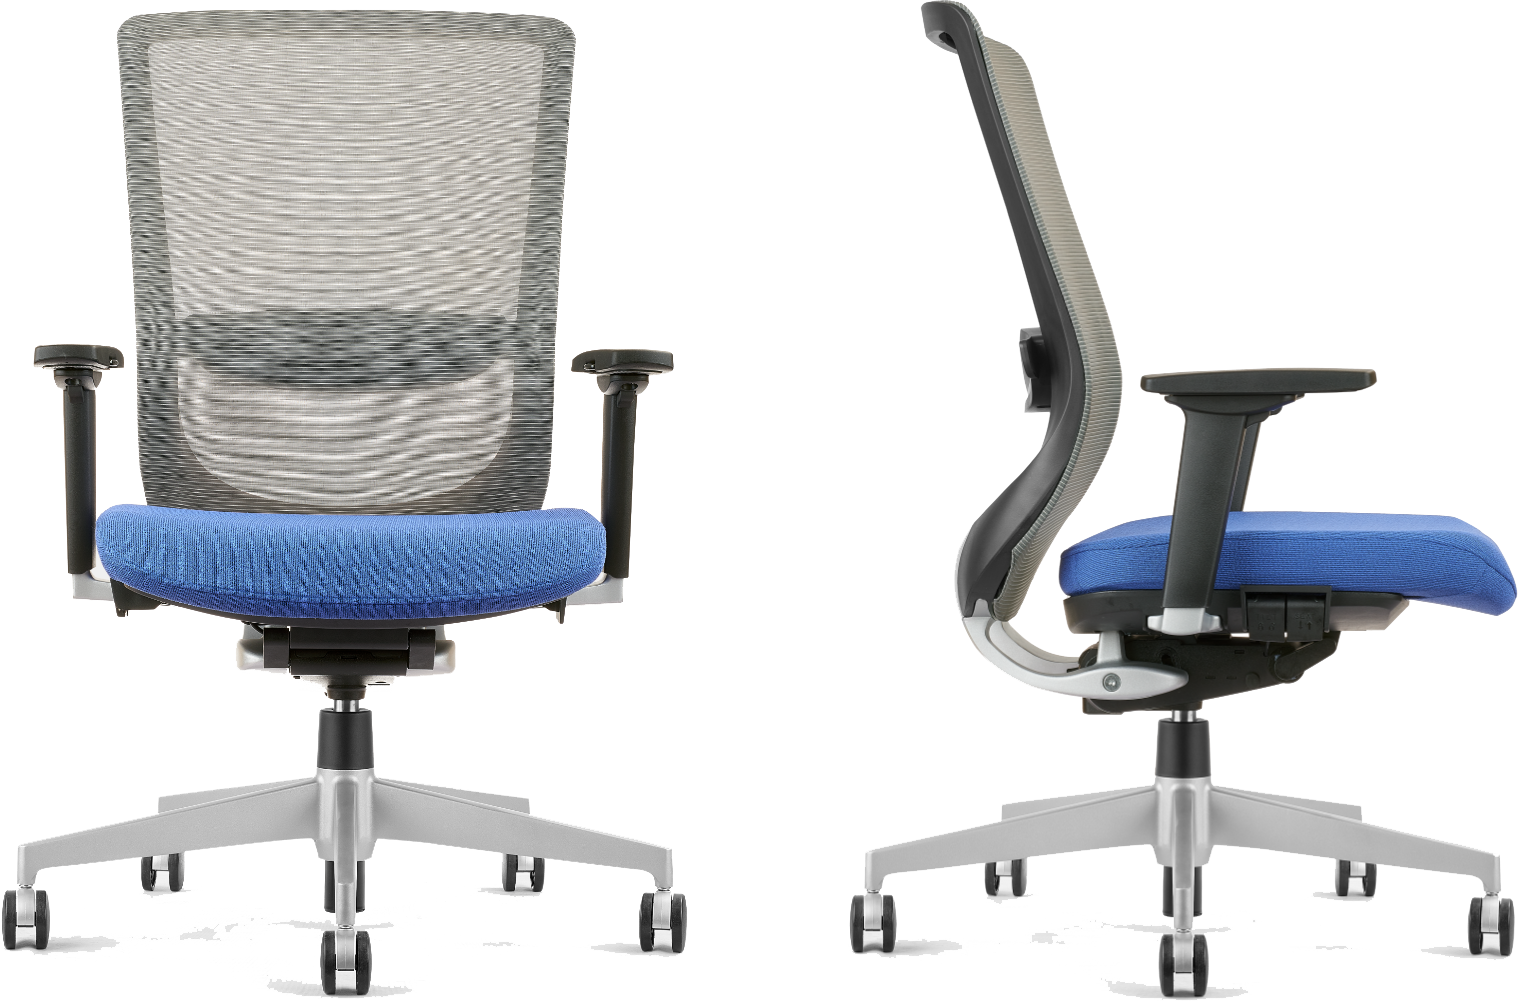 Blue adjustable ergonomic chair